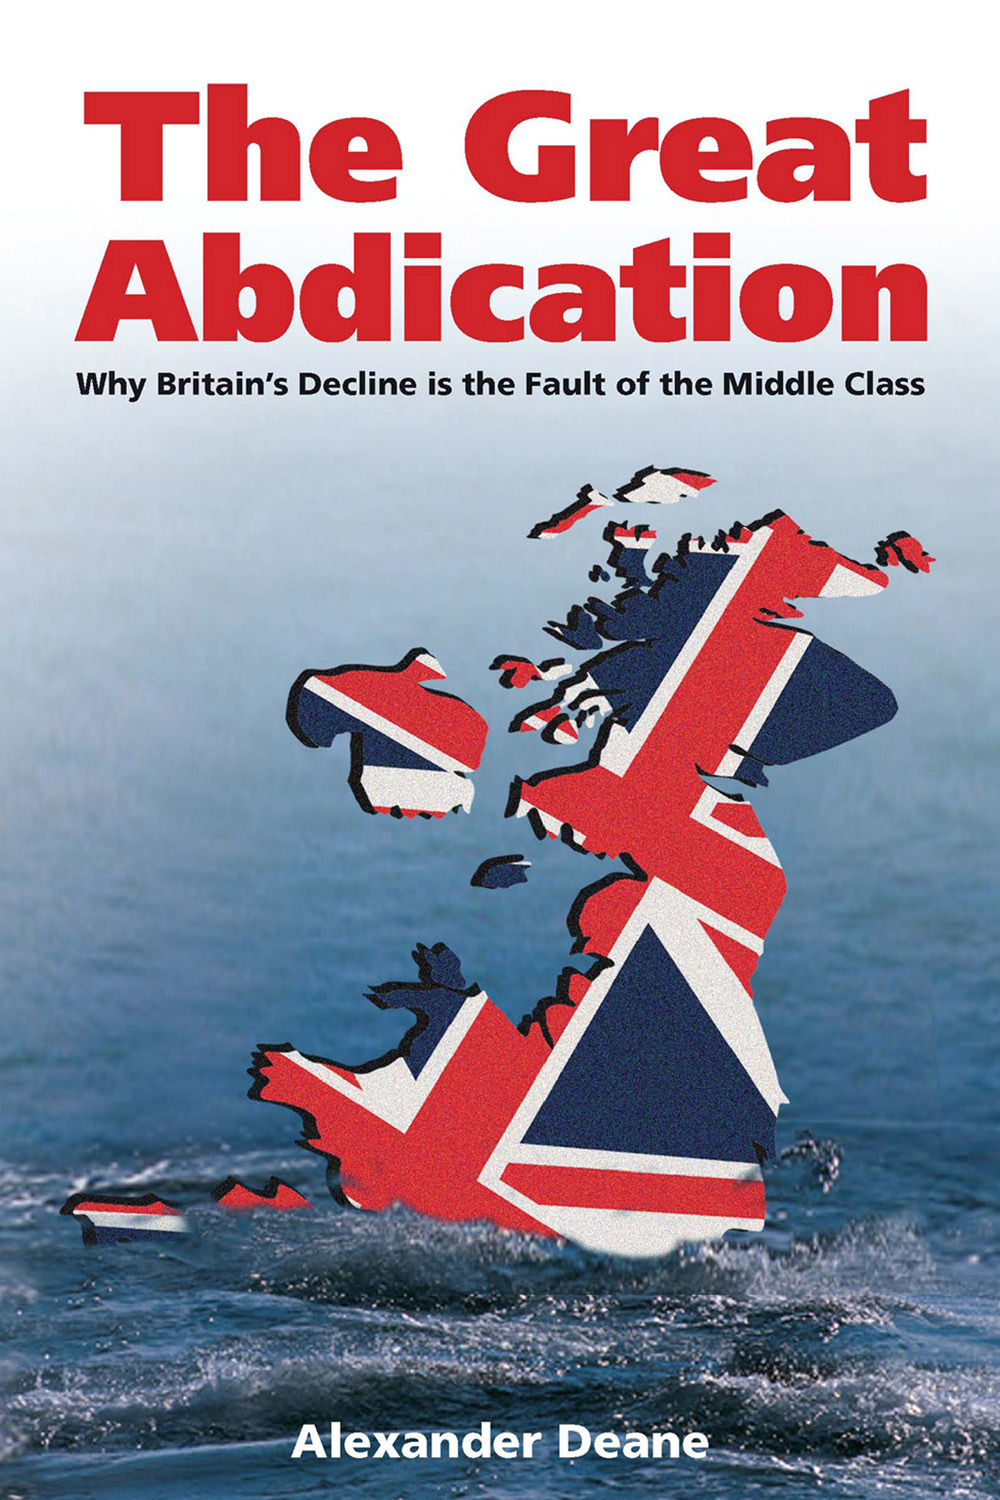 The Great Abdication